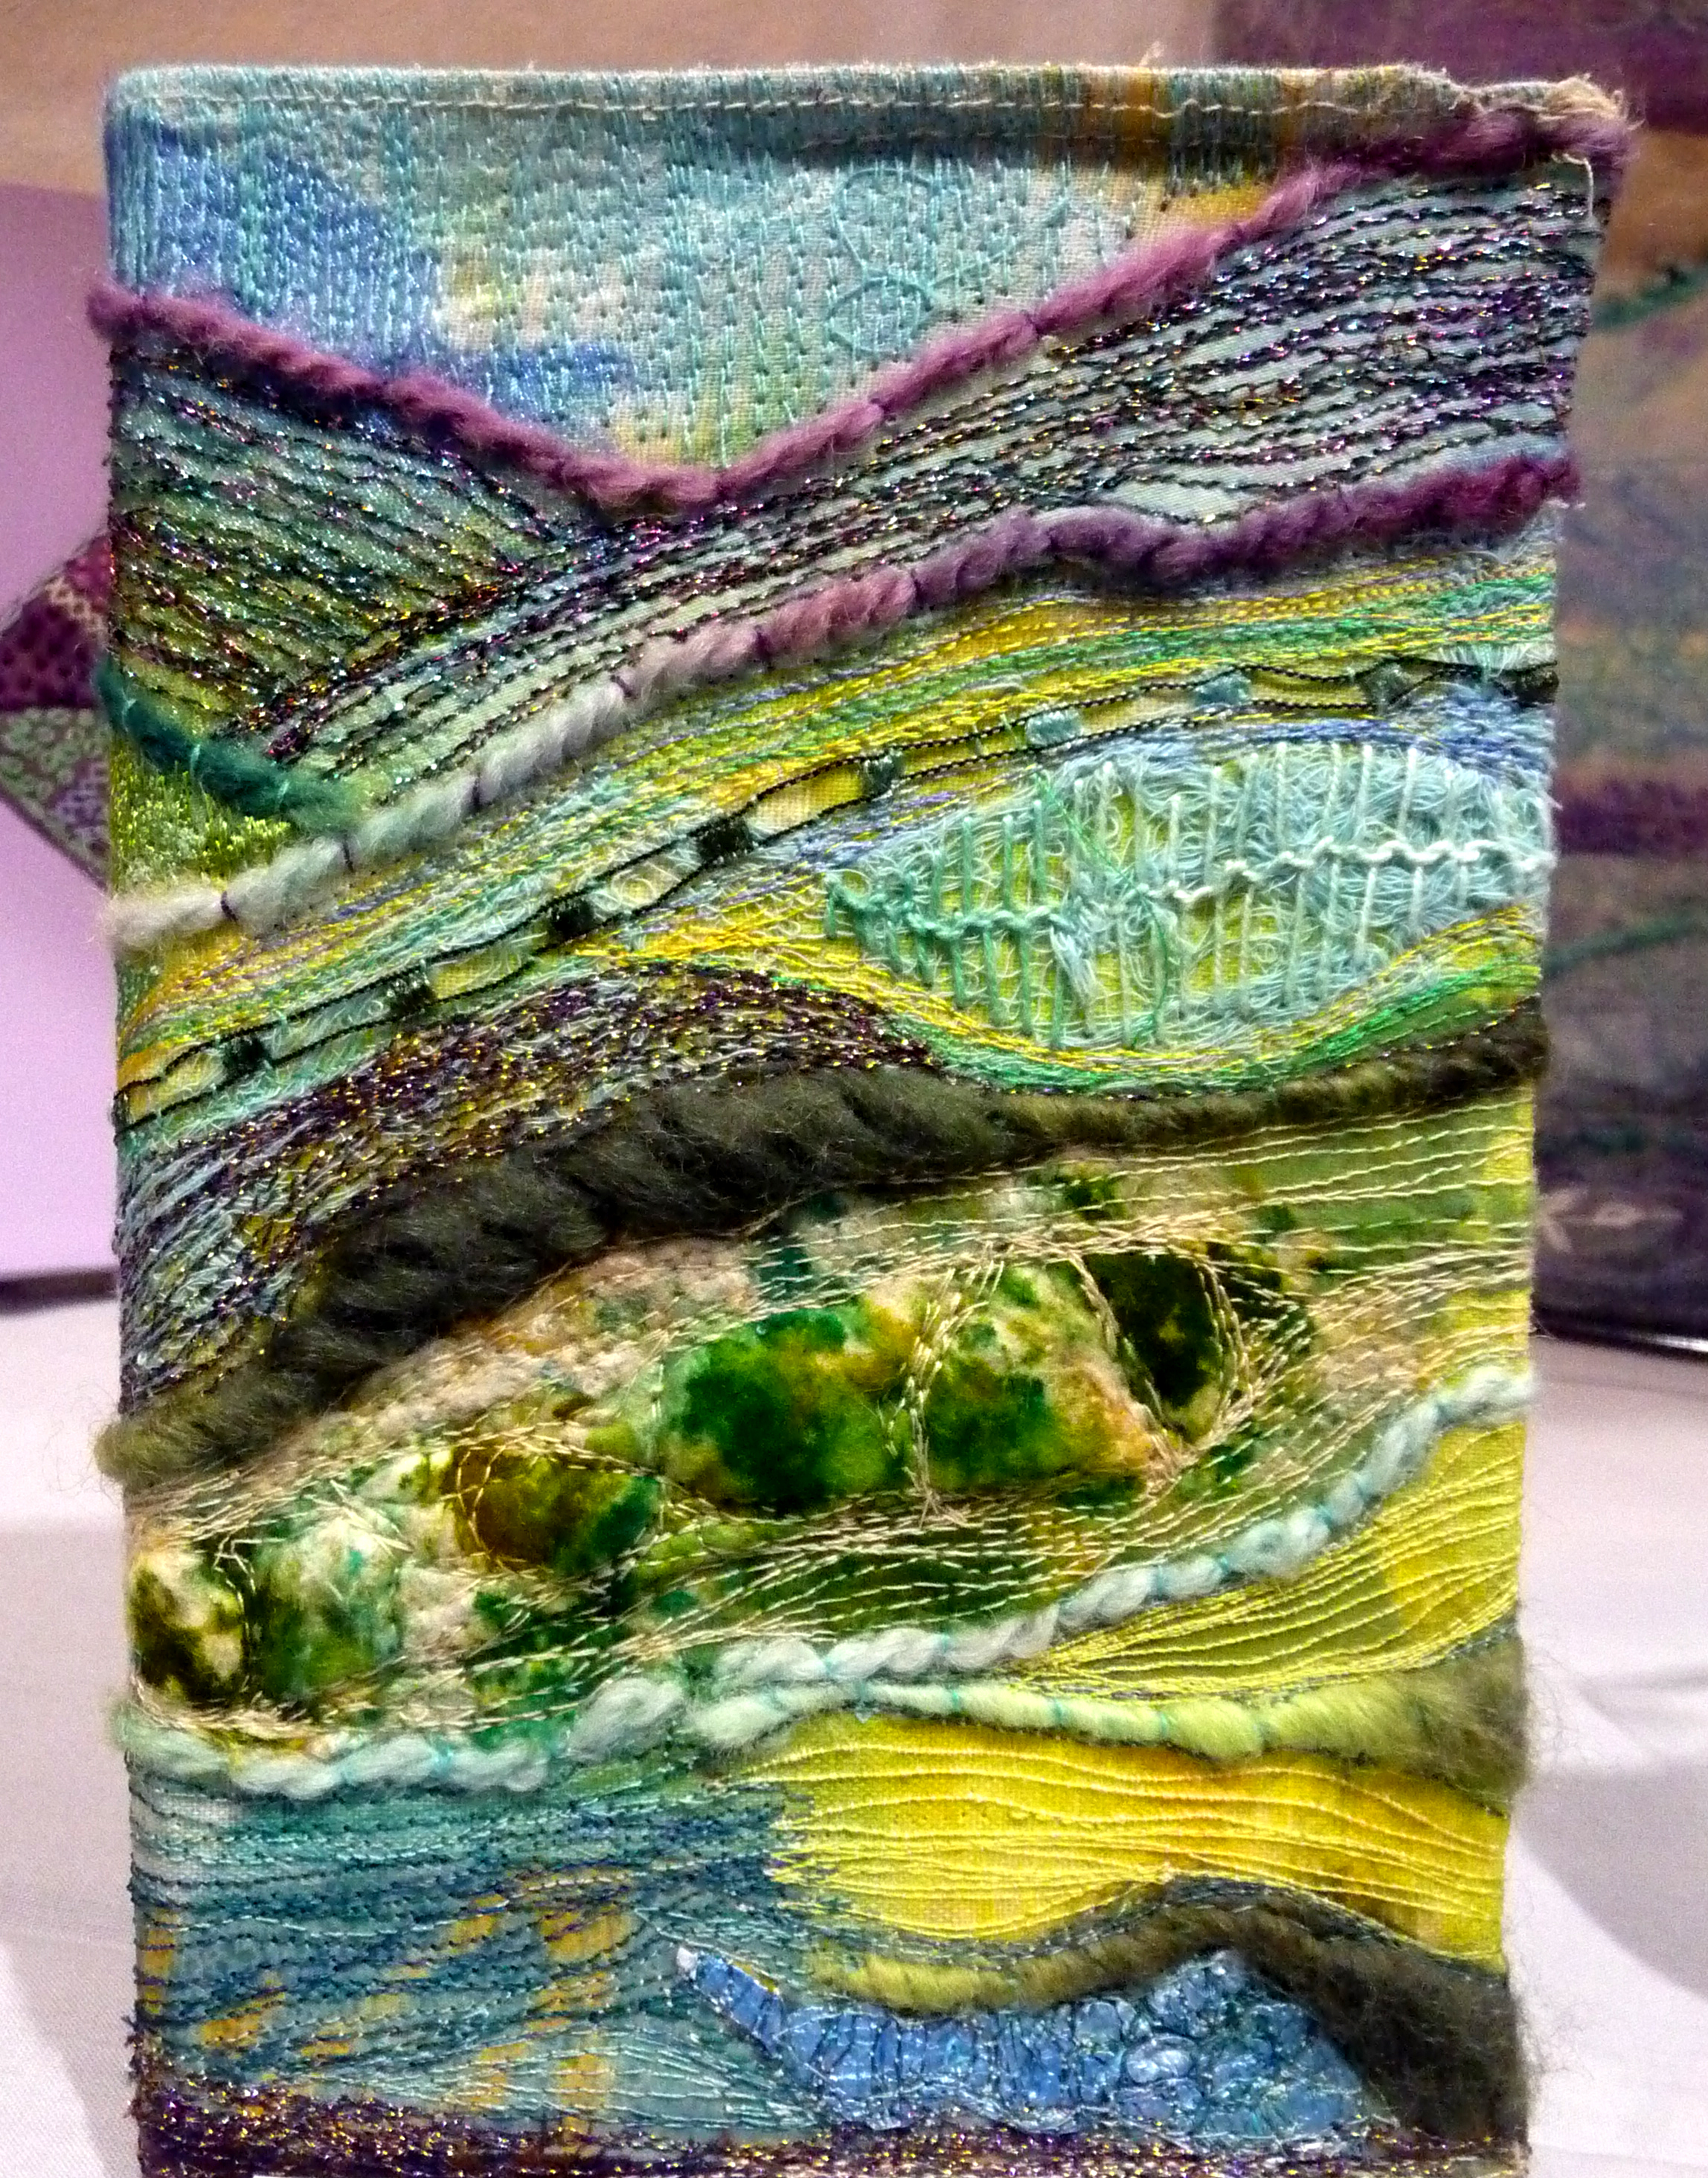 BOOK COVER-ABSTRACT LANDSCAPE by Roselie Gardner, hand and machine embroidery